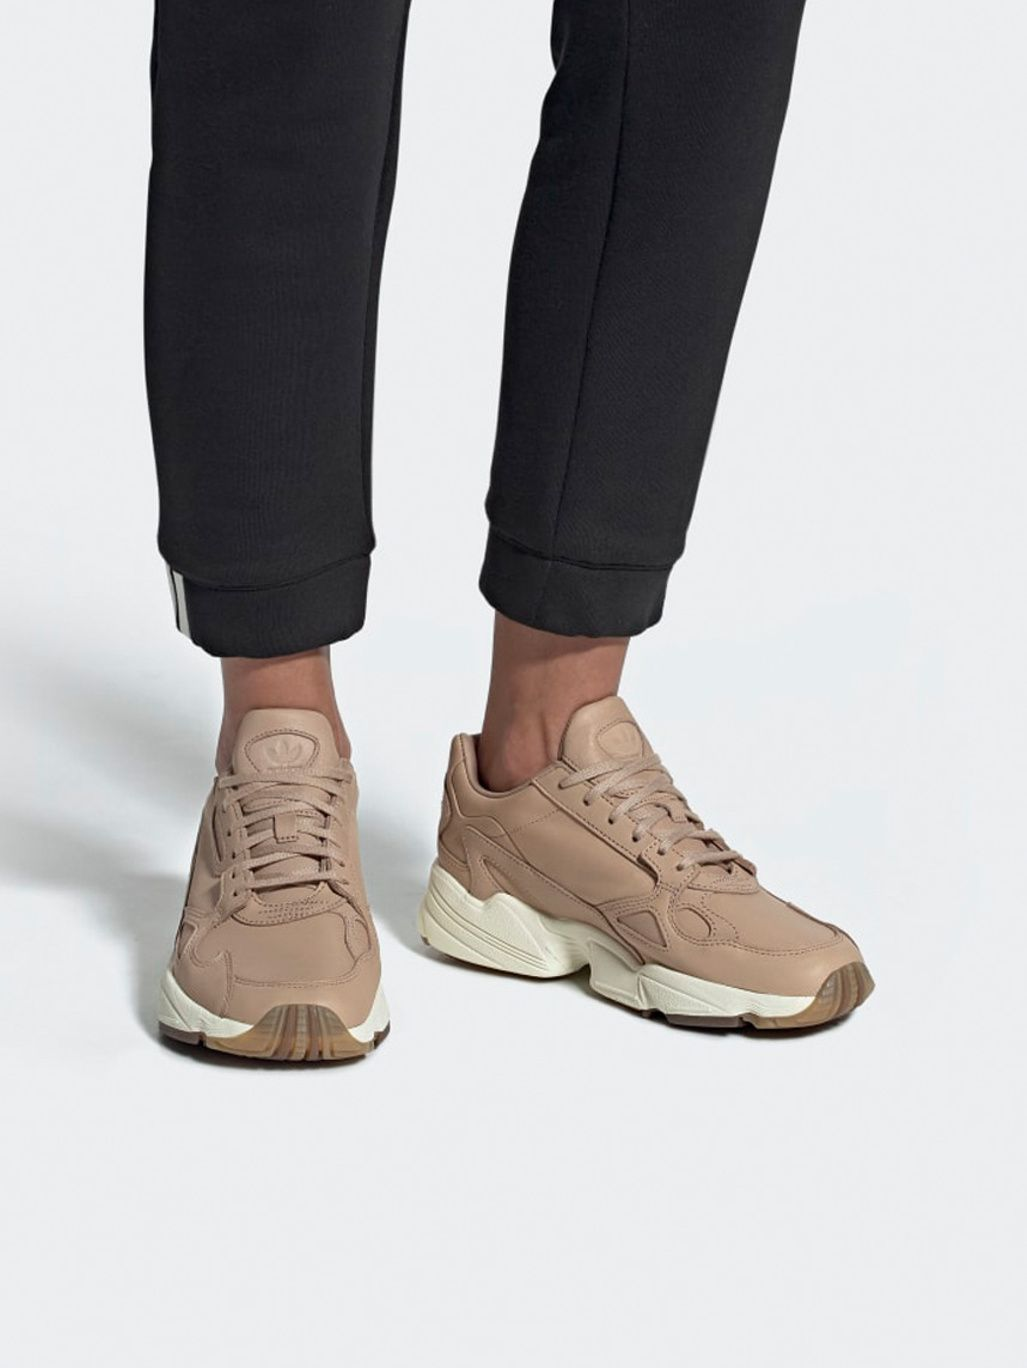 Adidas Originals Falcon W Ash Pearl | Womens sneakers, Pink ...